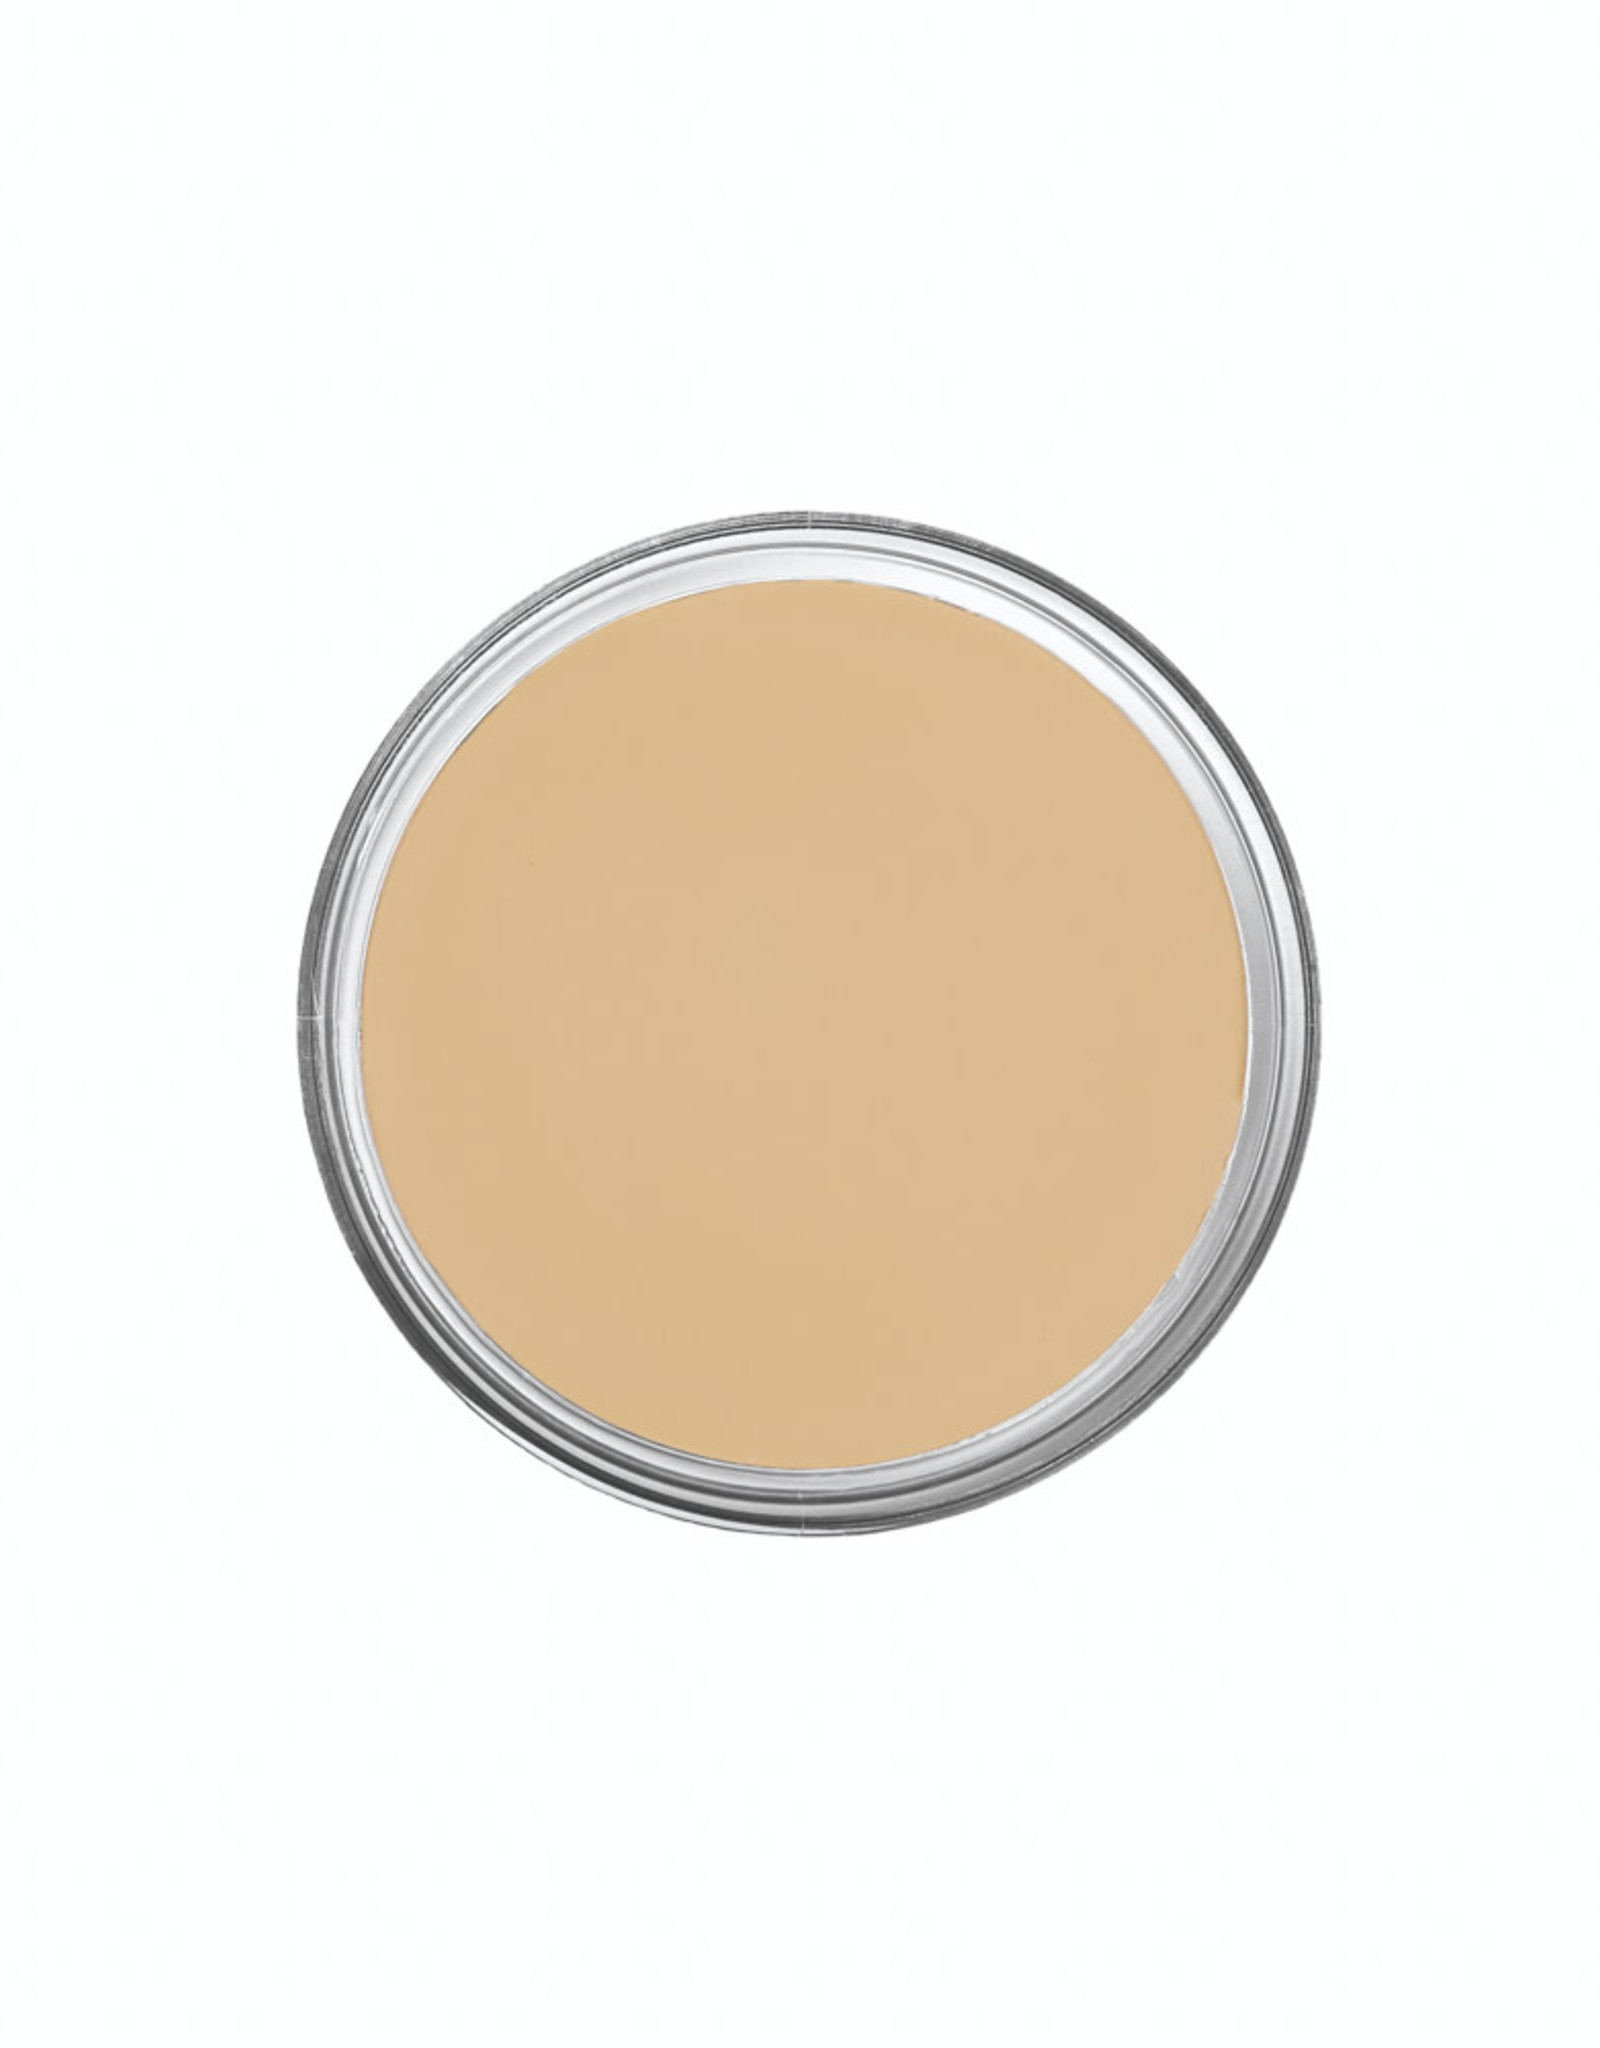 Ben Nye FOUNDATION-MATTE HD, BISCOTTE, .5 OZ